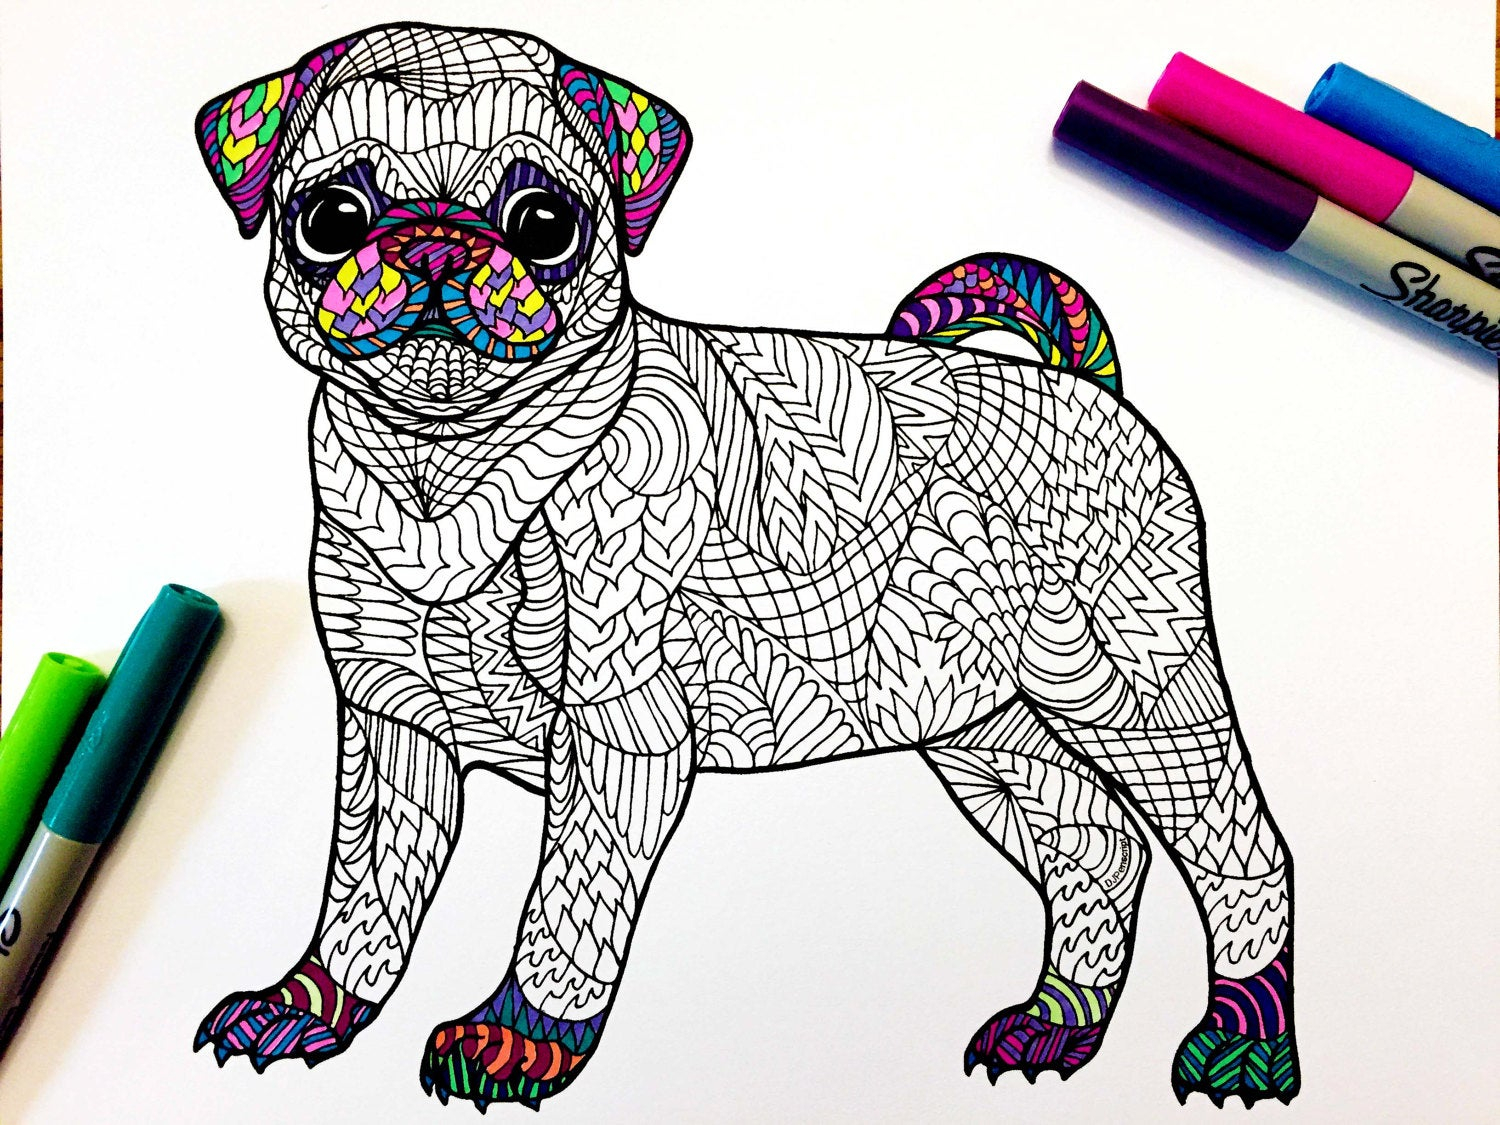 Pug Puppy Coloring Pages Pug Puppy Pdf Zentangle Coloring Page